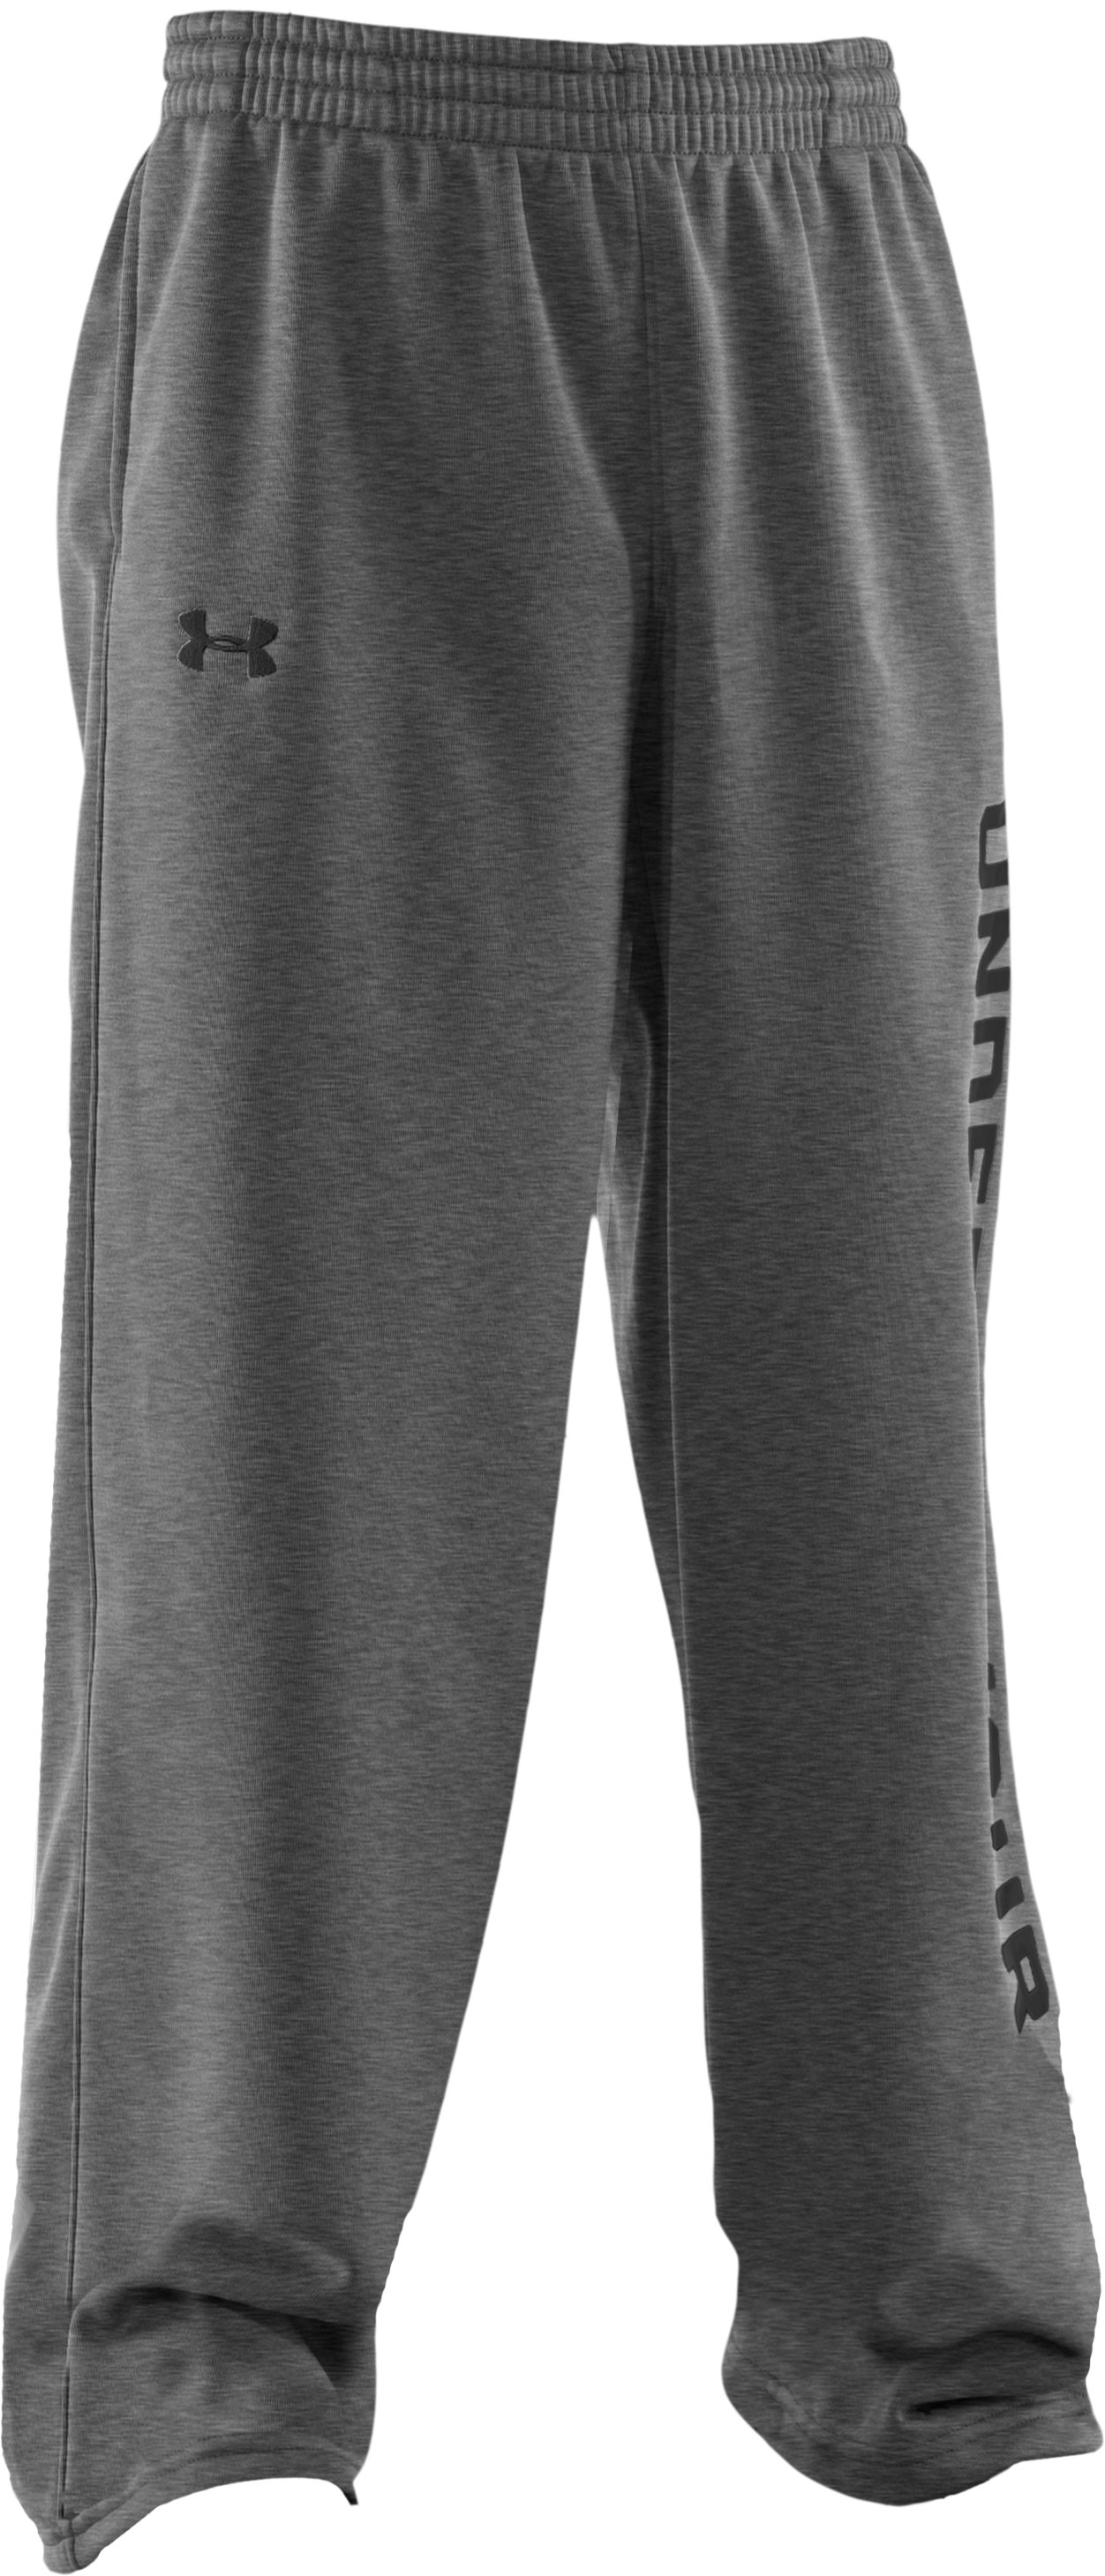 Boys' Armour® Fleece Storm Pants, True Gray Heather